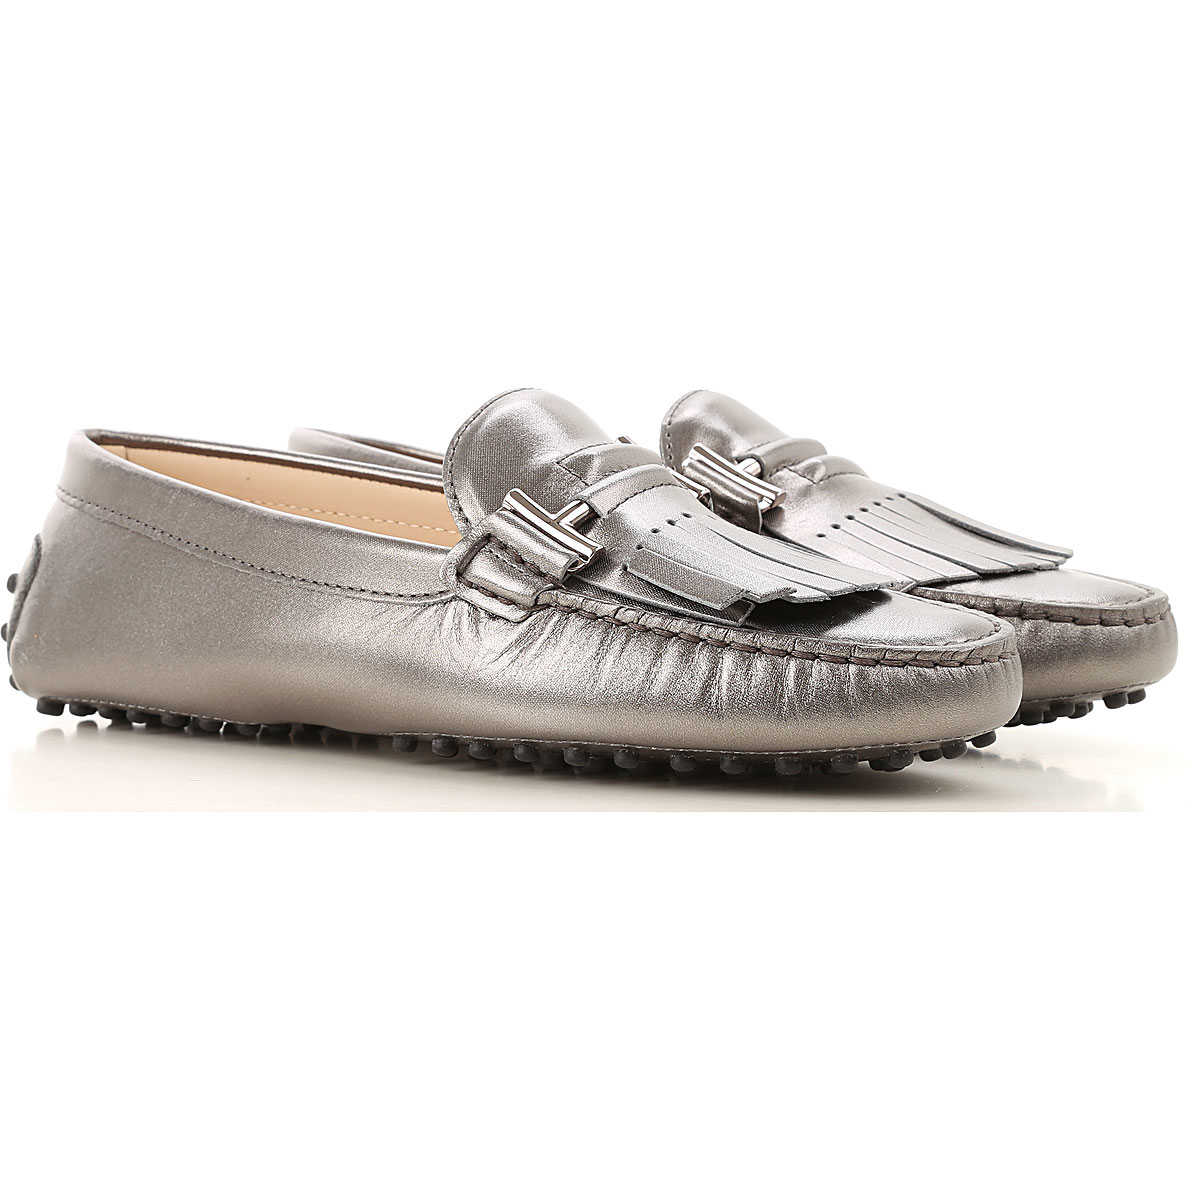 Tods Loafers for Women Mid Grey SE - GOOFASH